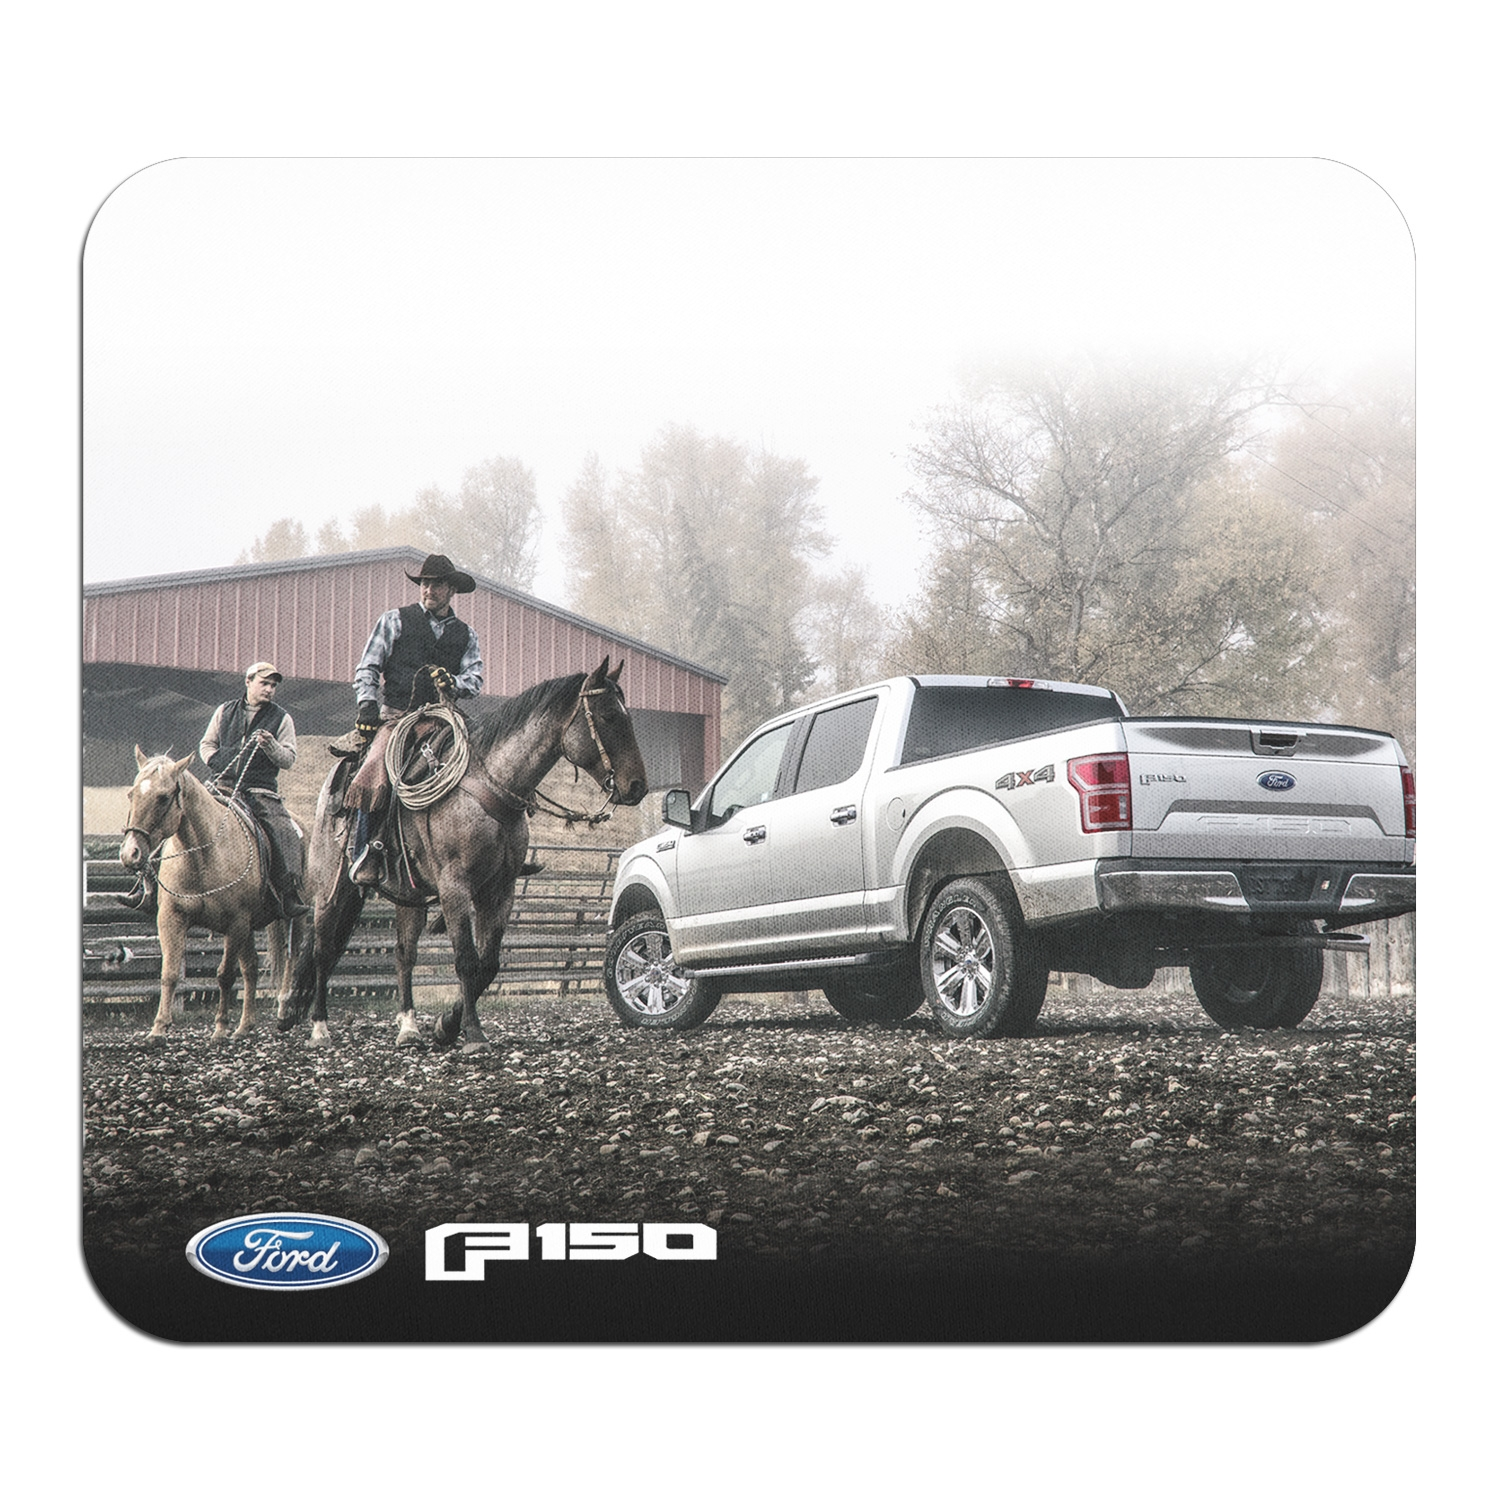 Ford F-150 Cowboys Graphic PC Mouse Pad